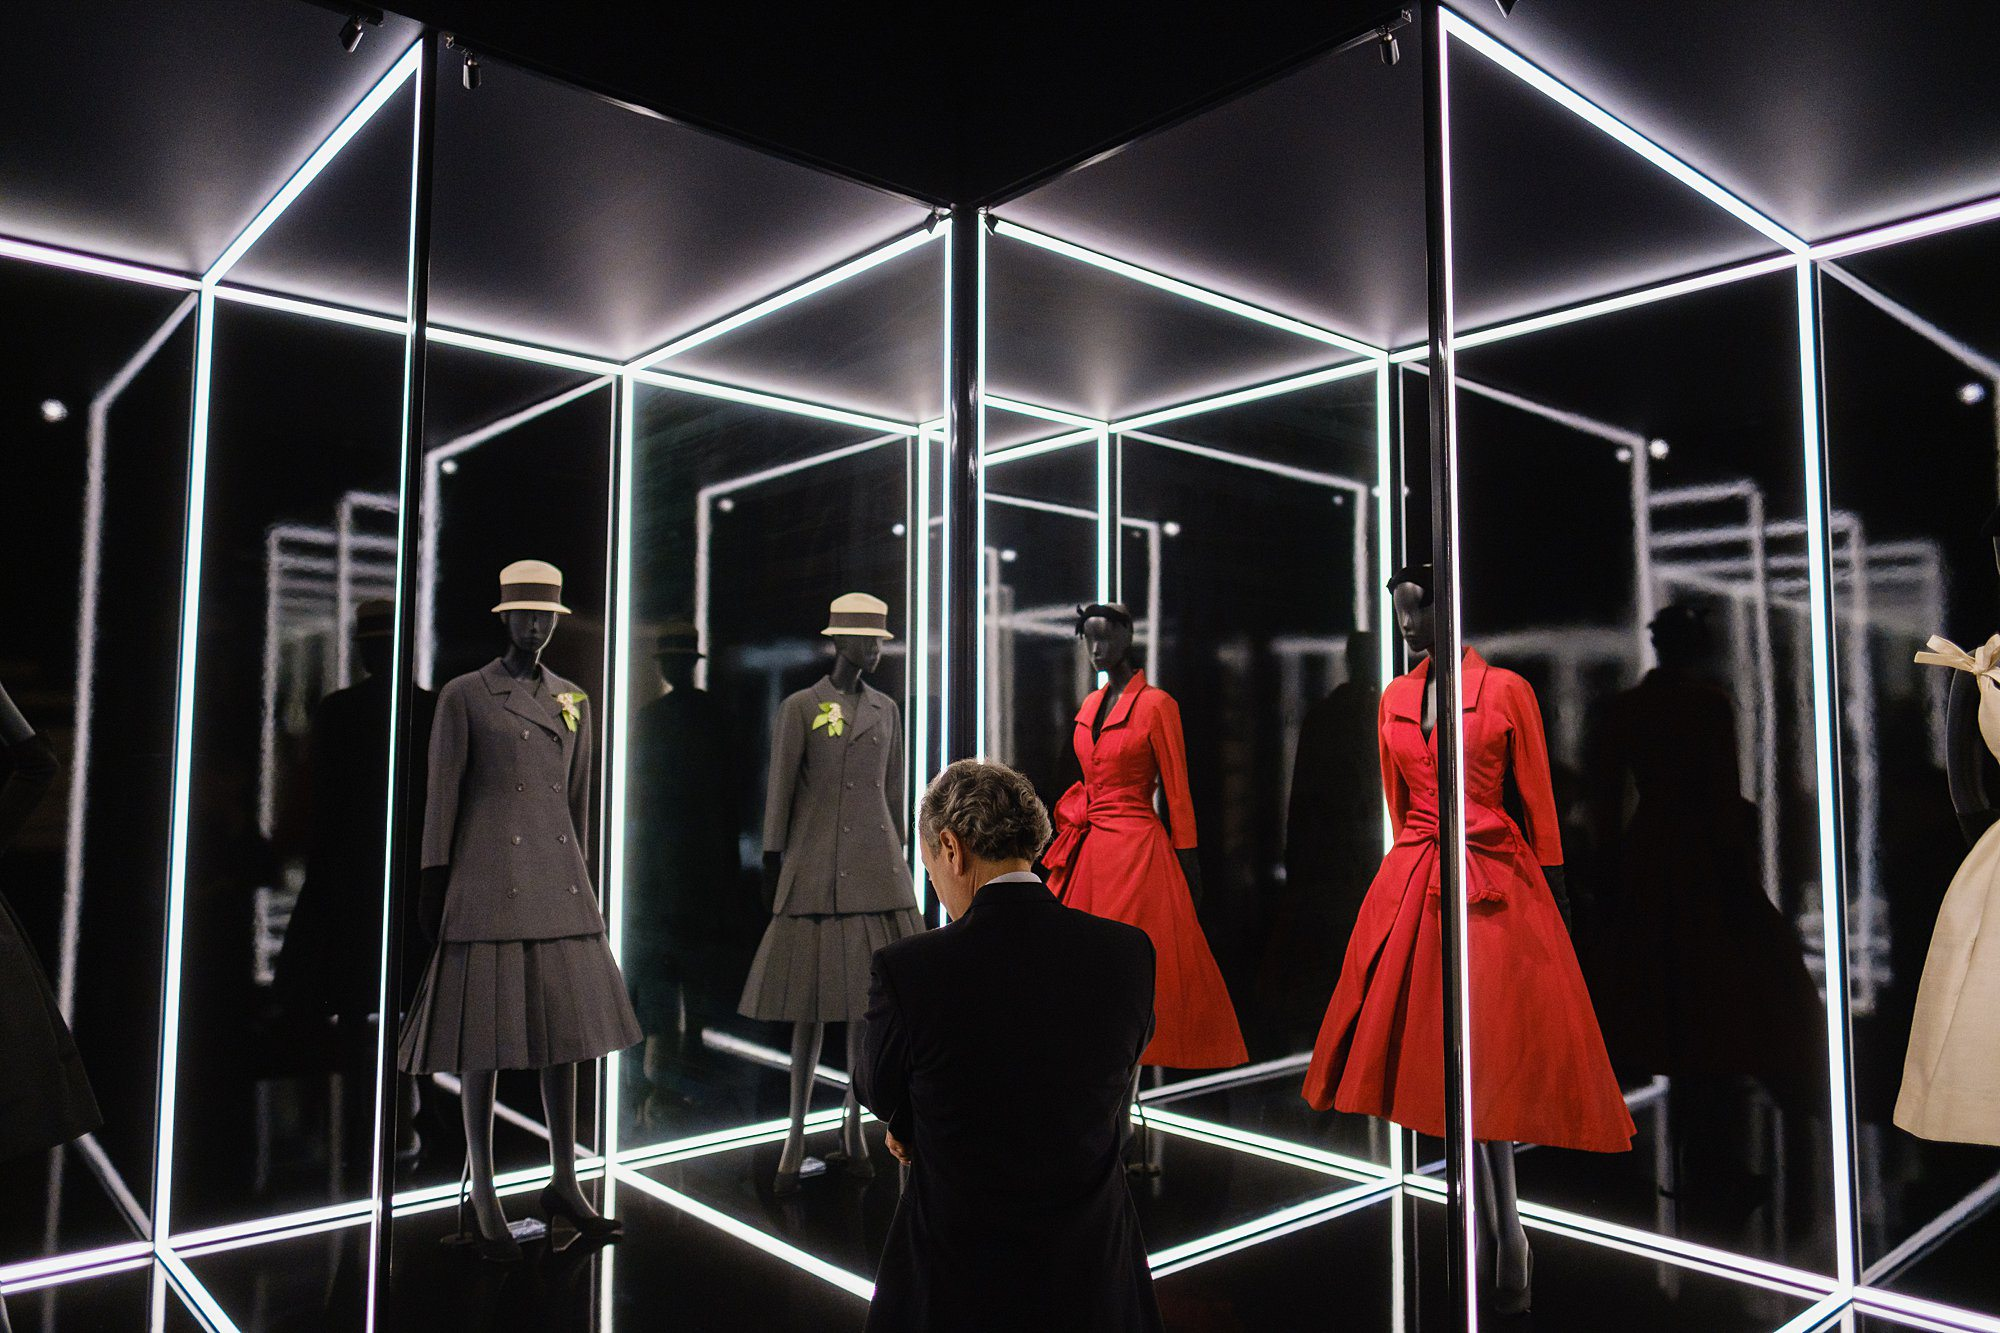 victoria albert event photographer london 059 - The Christian Dior Exhibition at the V&A